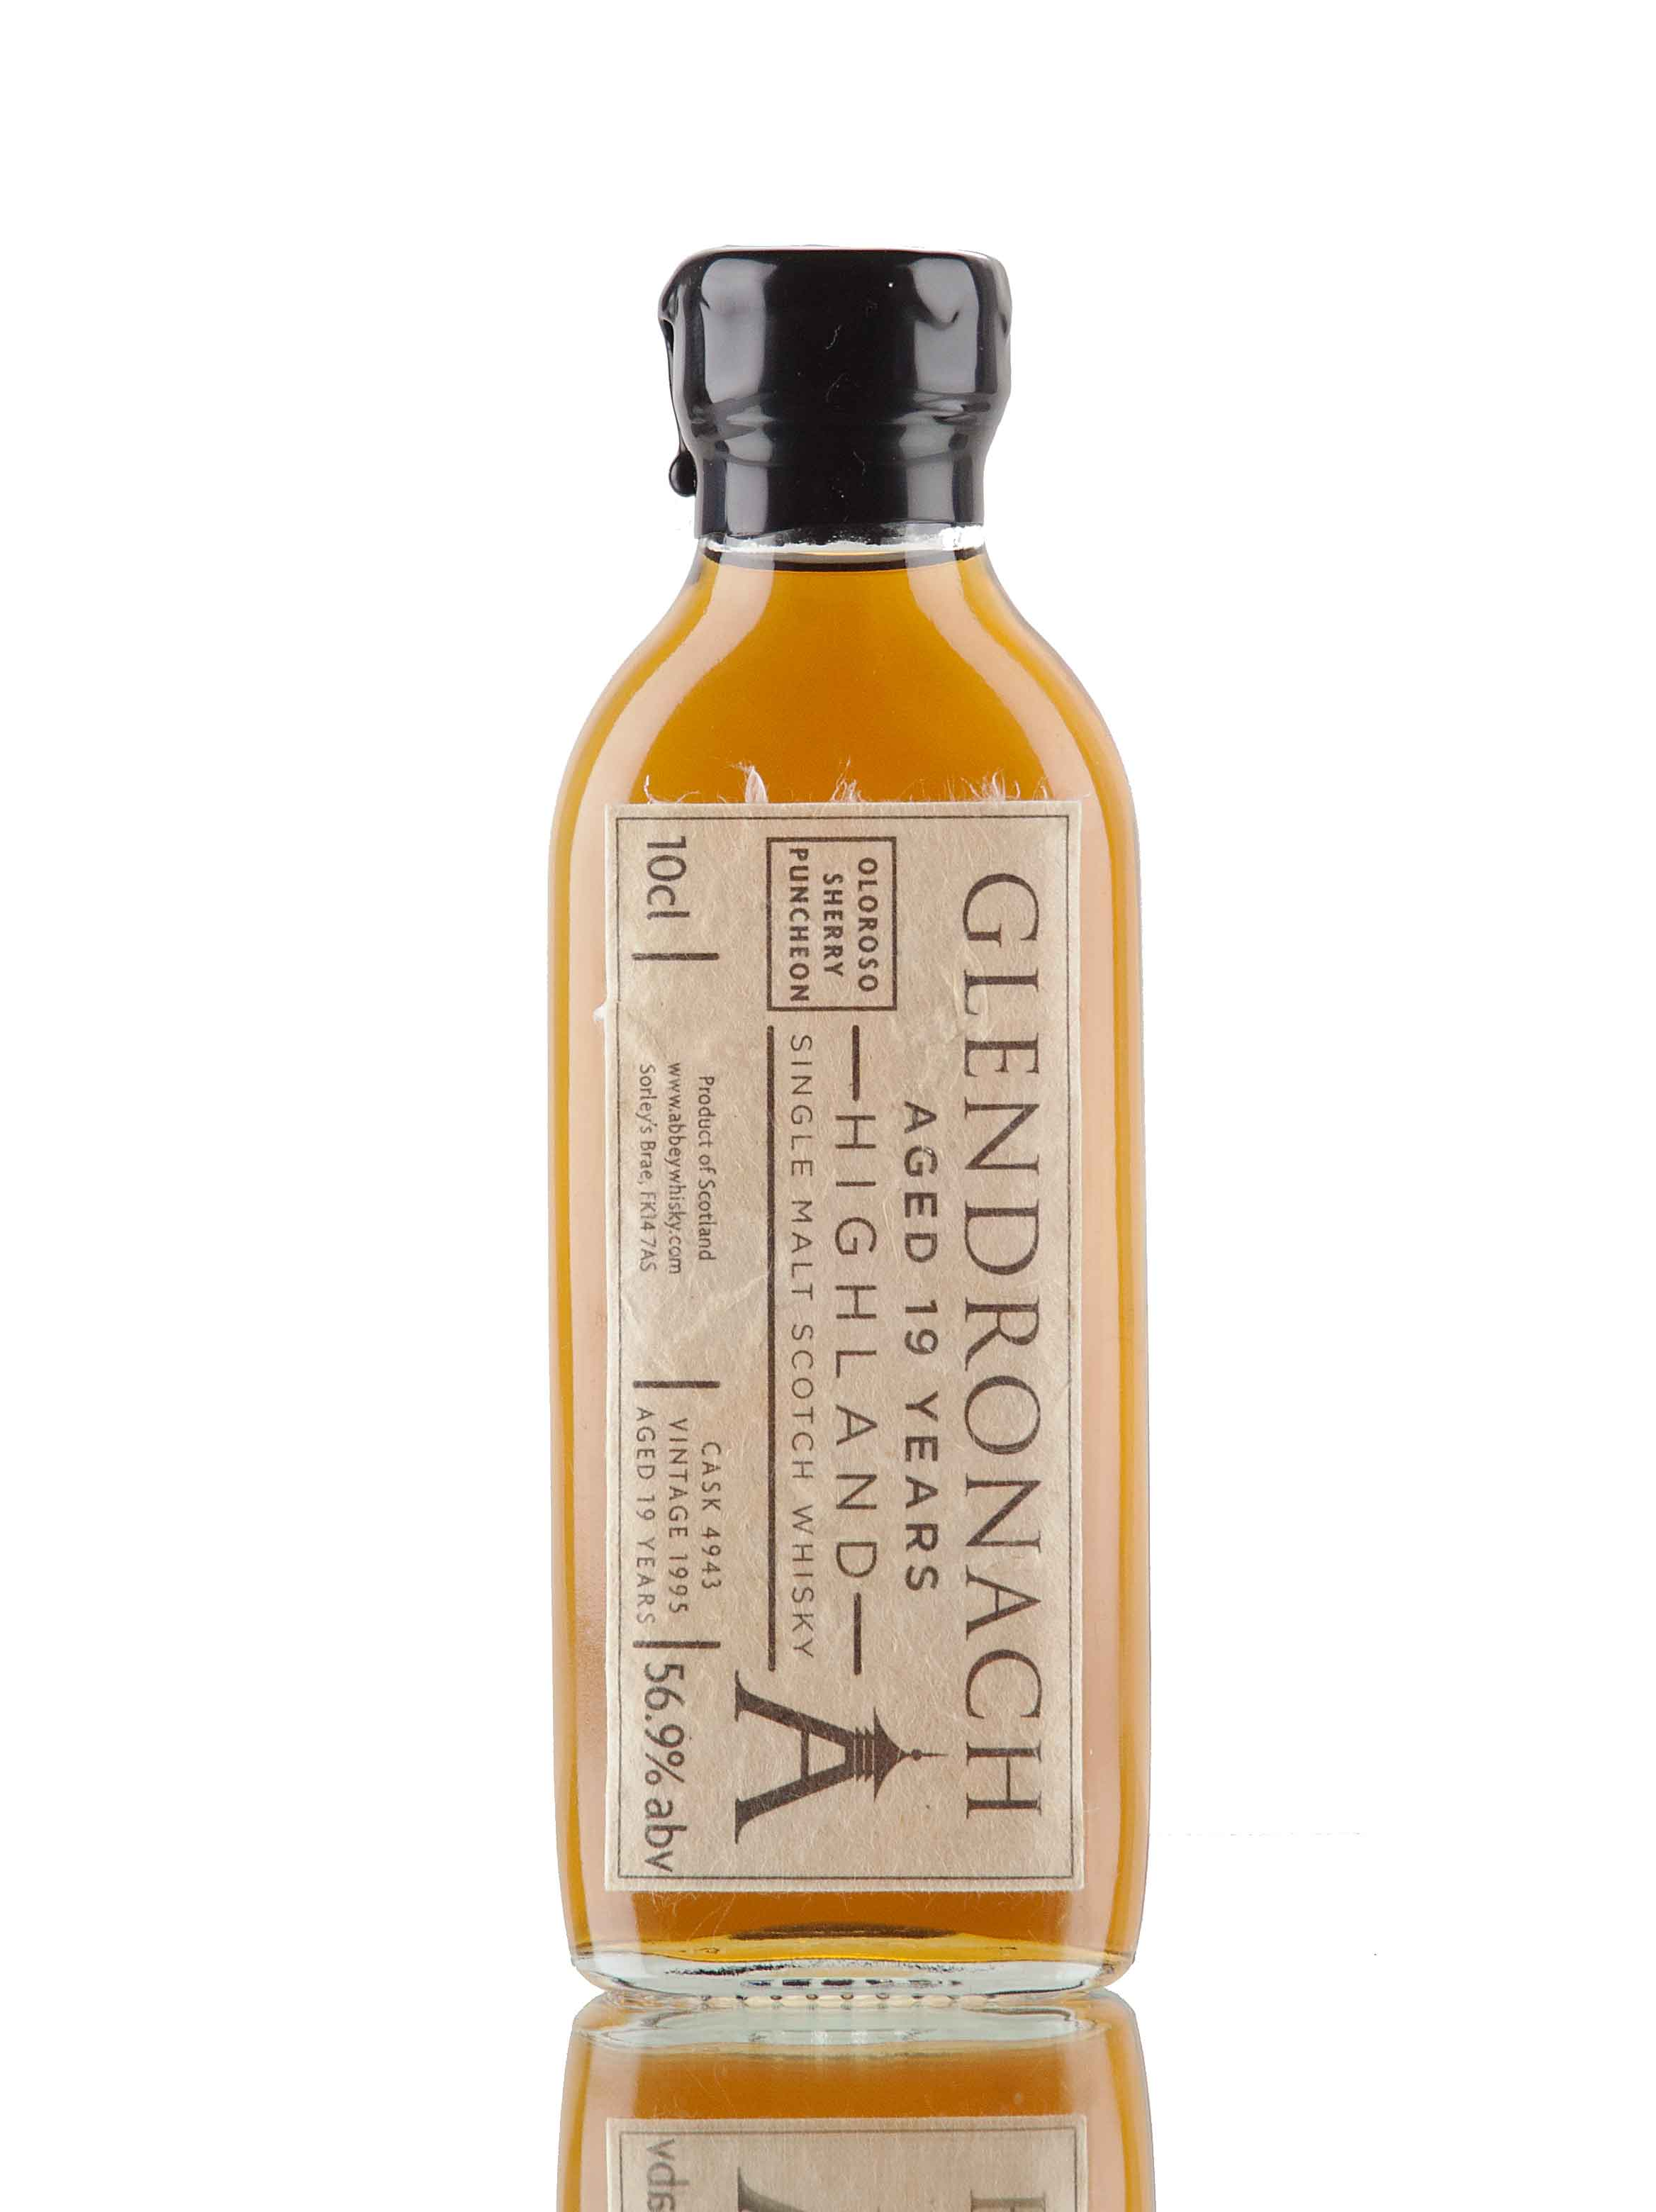 GlenDronach 19 Year Old - 1995 / Cask 4943 / 10cl Sample